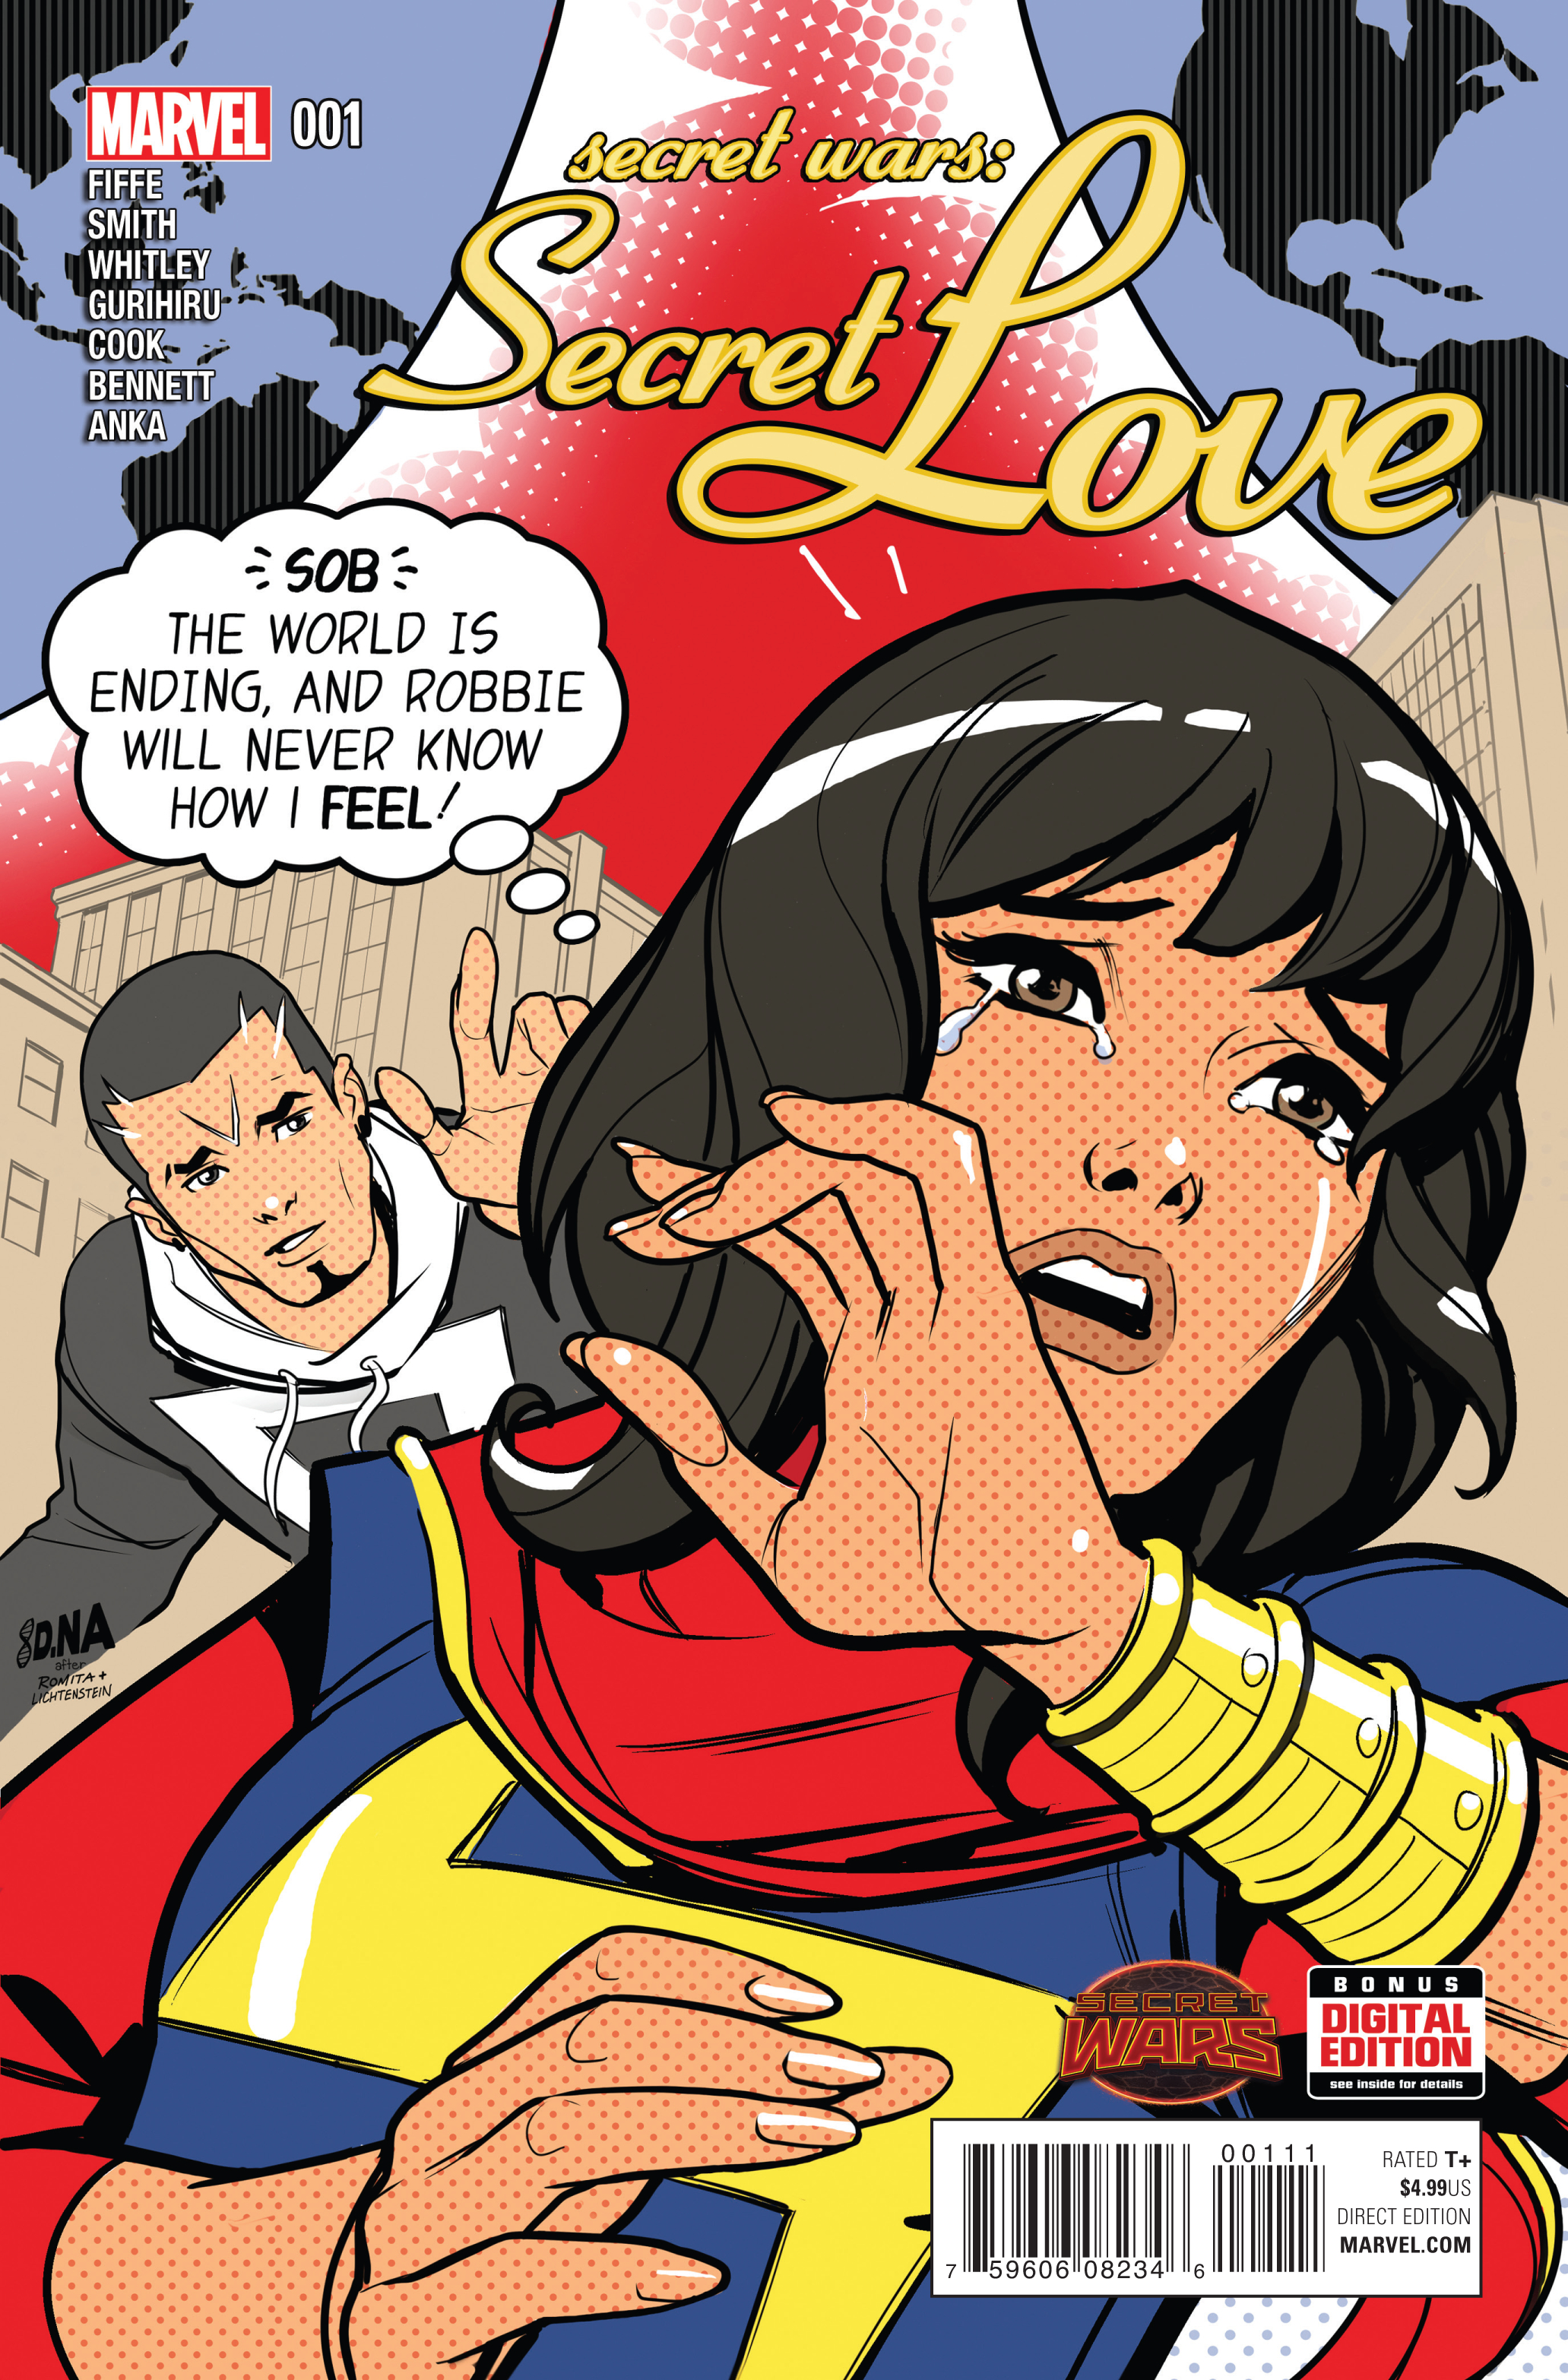 SECRET WARS SECRET LOVE #1 SWA